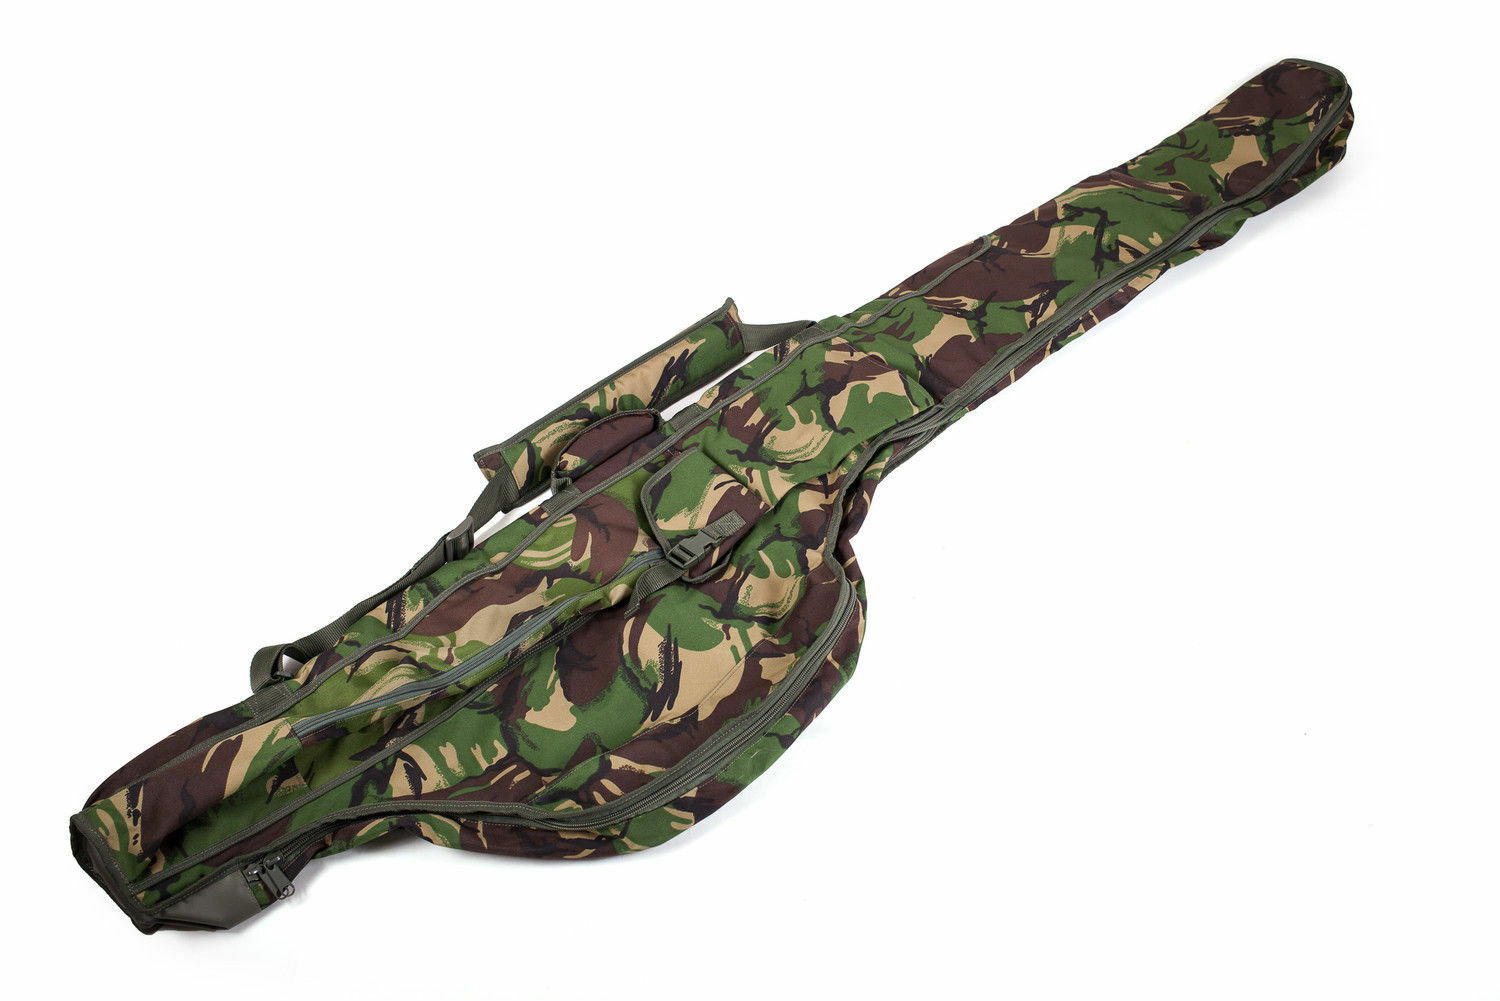 Cotswold Aquarius Trident Trident Aquarius 13ft 4/5 Carp Fishing Rod Holdall Woodland Camo NEW cbf74d